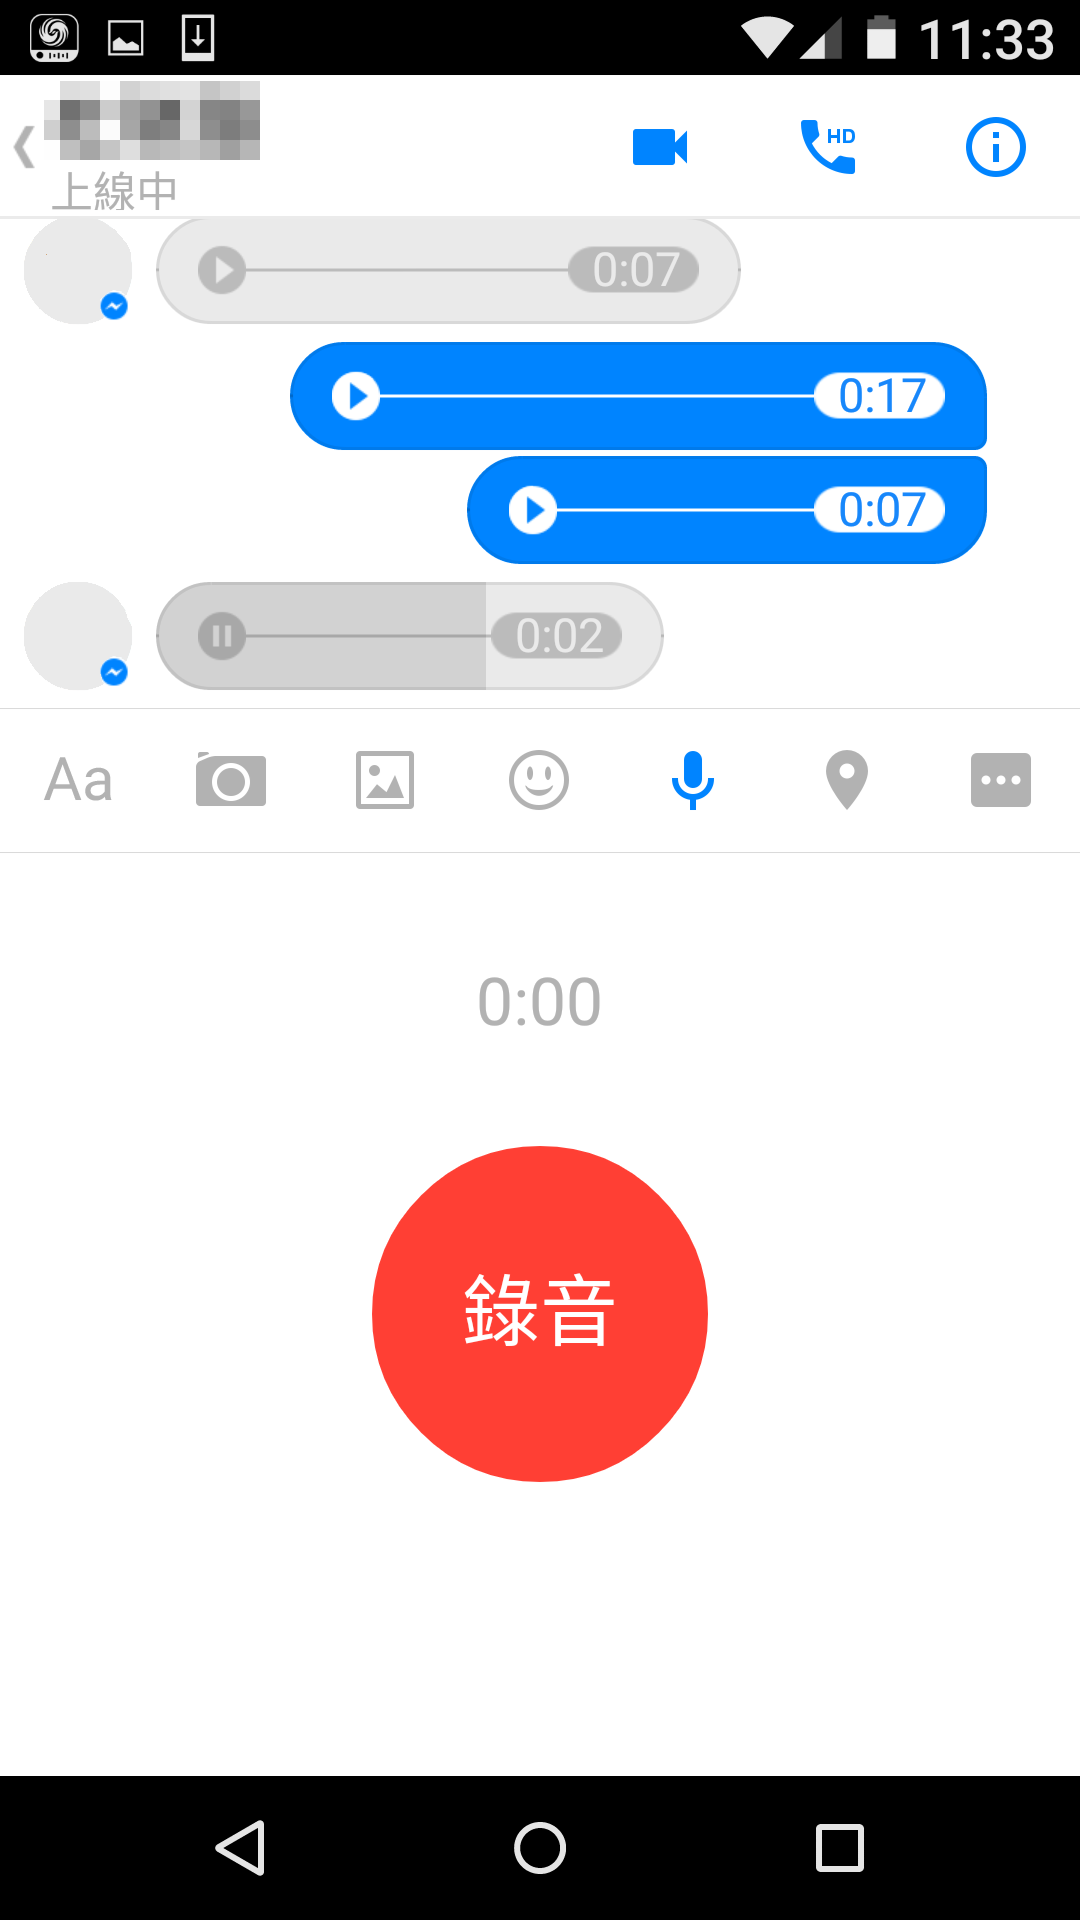 Using voice messaging to practise Chinese speaking and listening